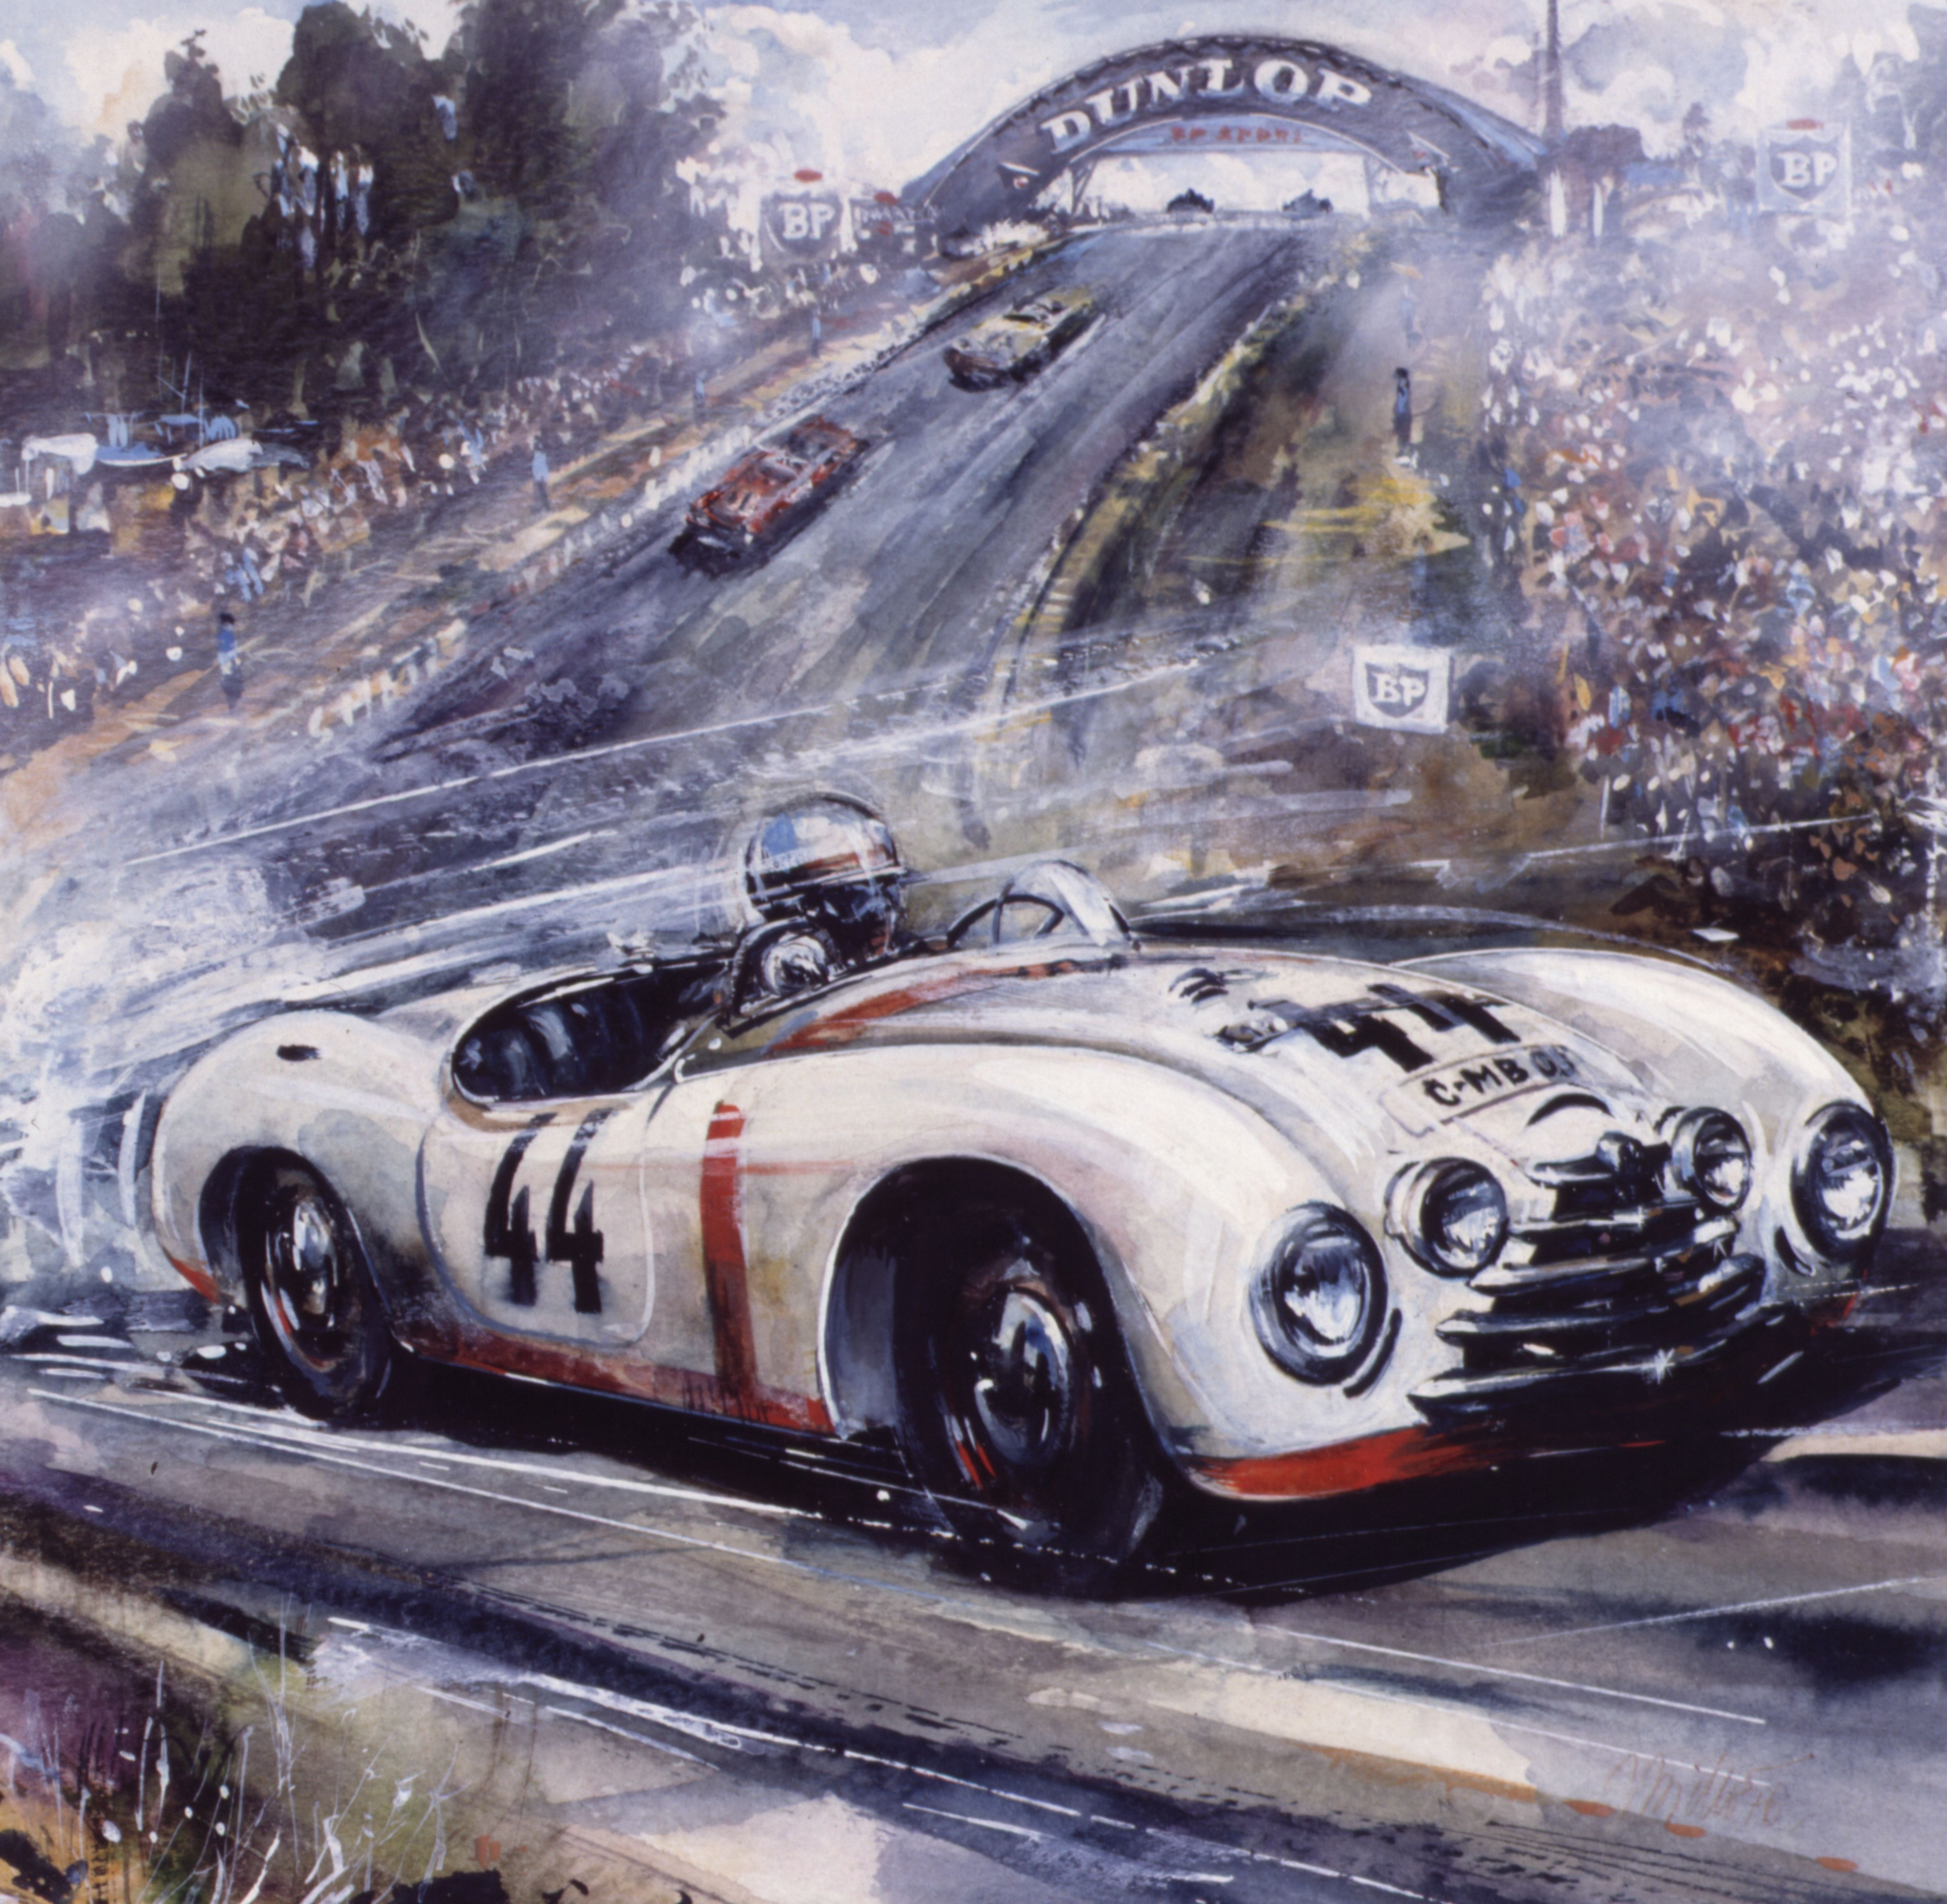 70 years ago today: SKODA's only start in the famous 24 Hours of Le Mans - Image 1